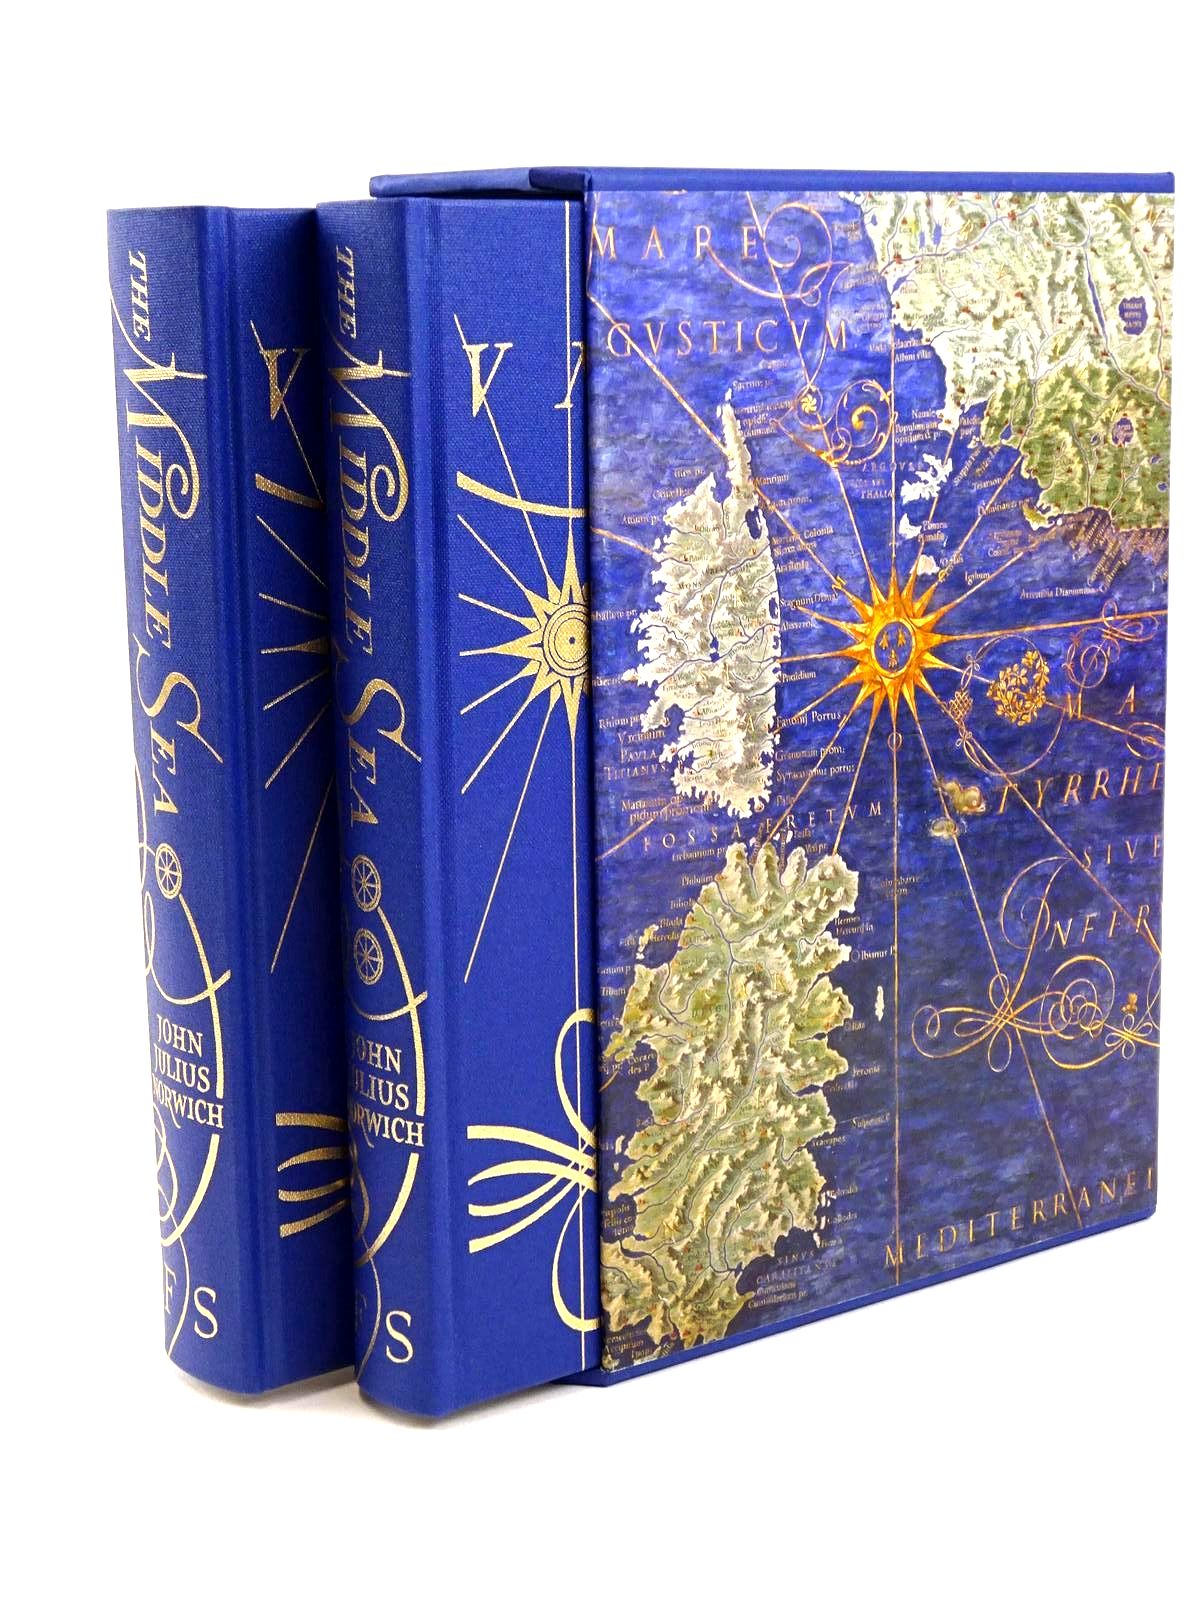 Photo of THE MIDDLE SEA written by Norwich, John Julius published by Folio Society (STOCK CODE: 1318280)  for sale by Stella & Rose's Books